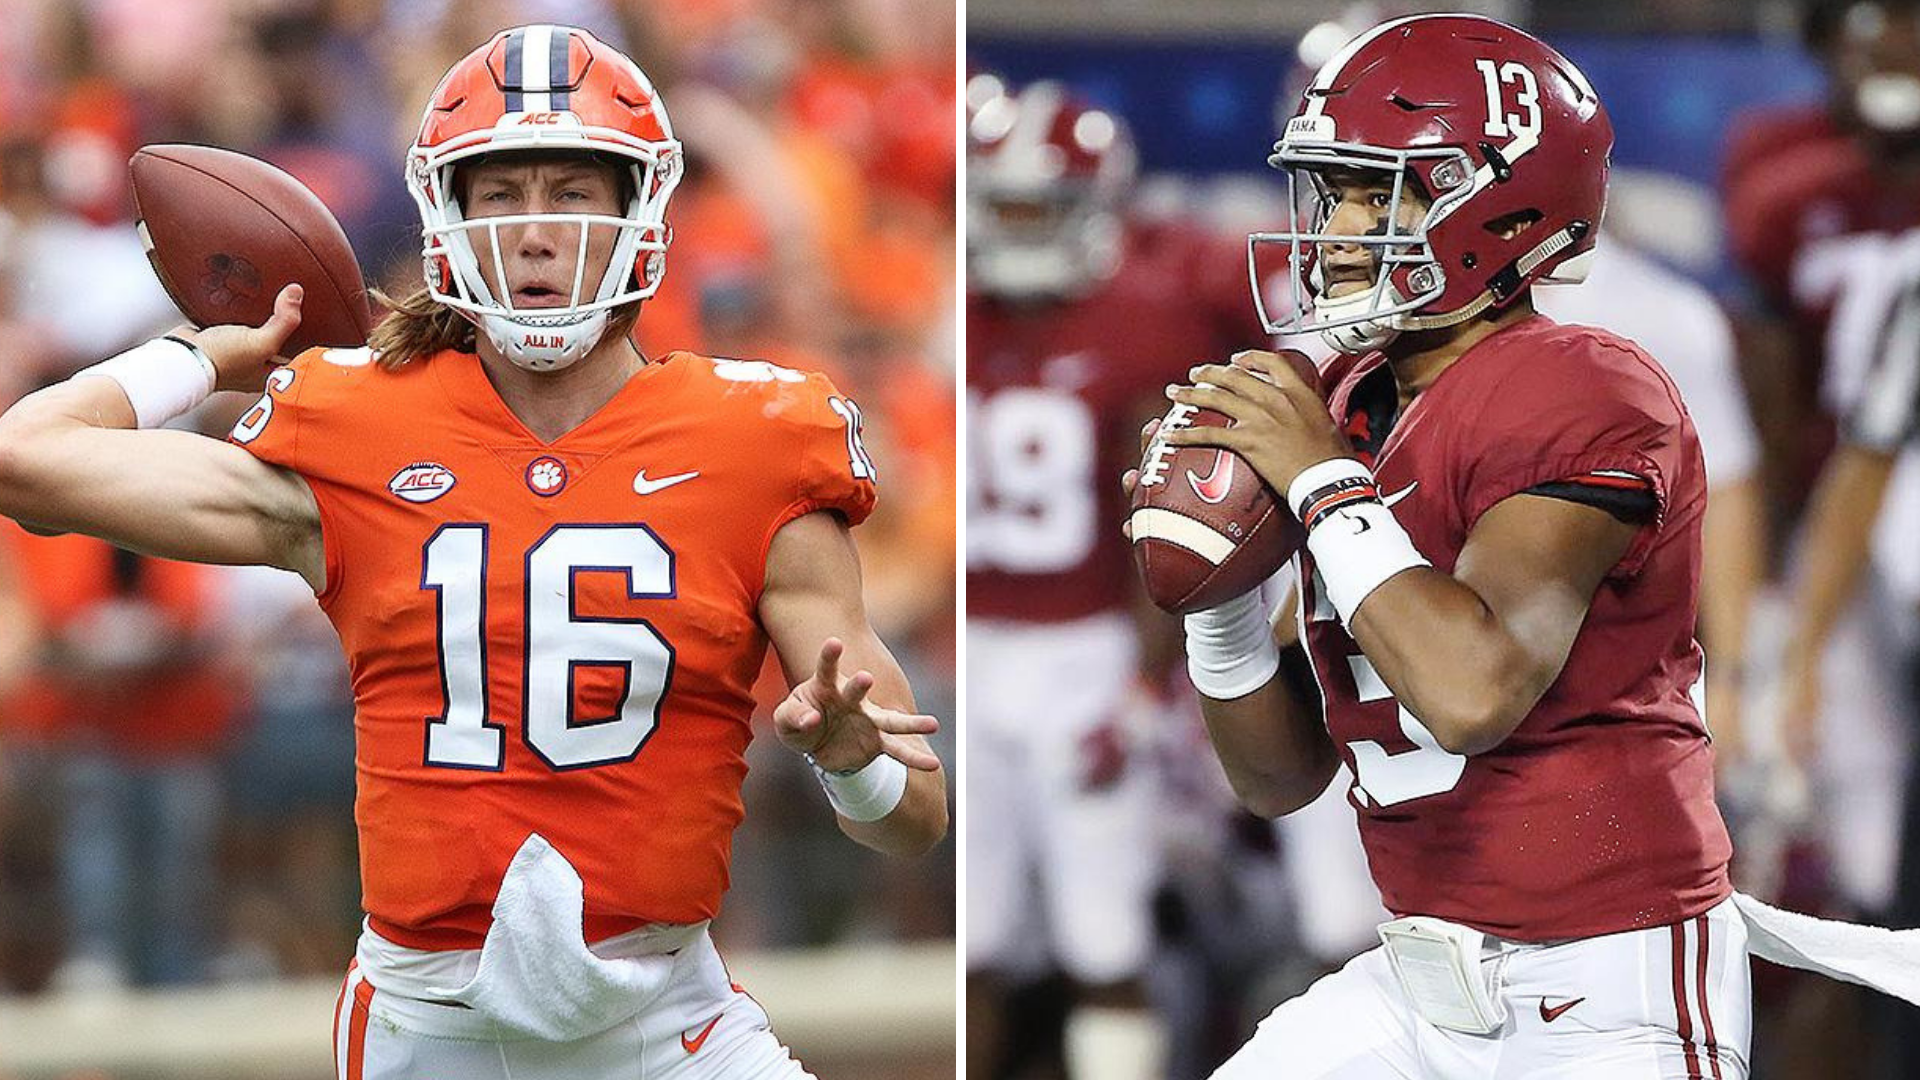 Looking Ahead To National Title Game Between Clemson And Alabama